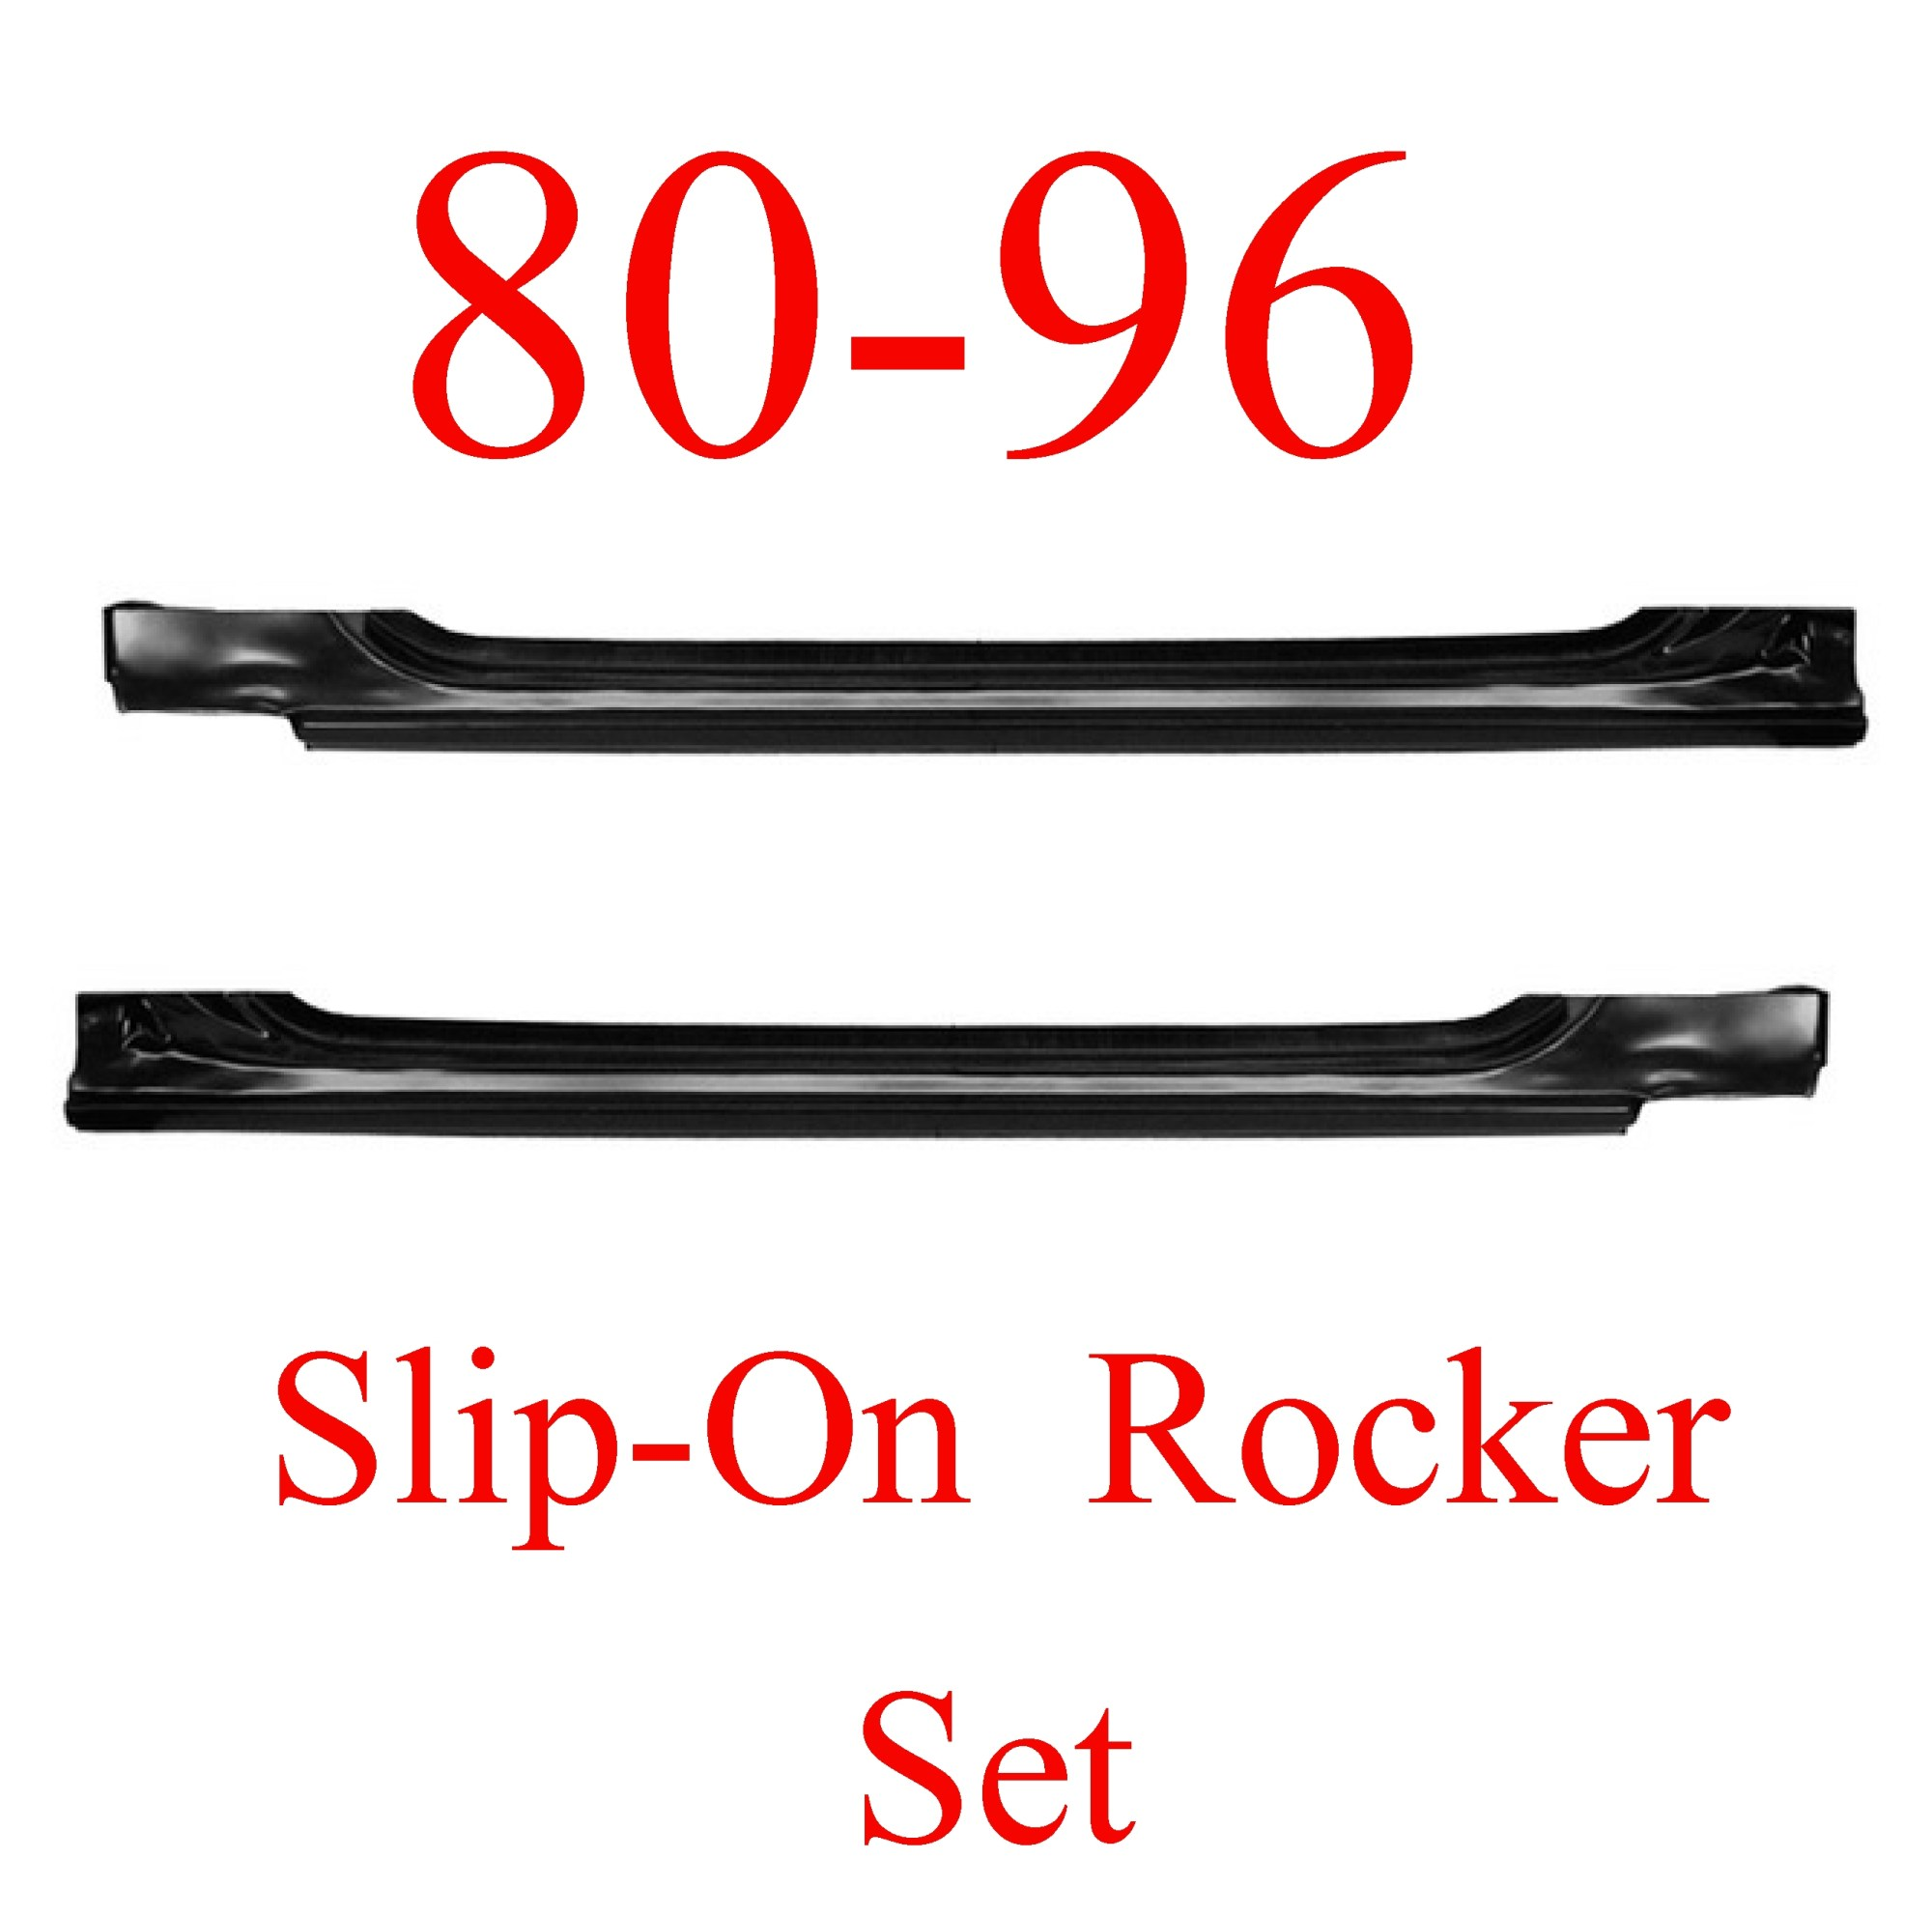 hight resolution of 80 96 ford slip on rocker panel set ford truck bronco